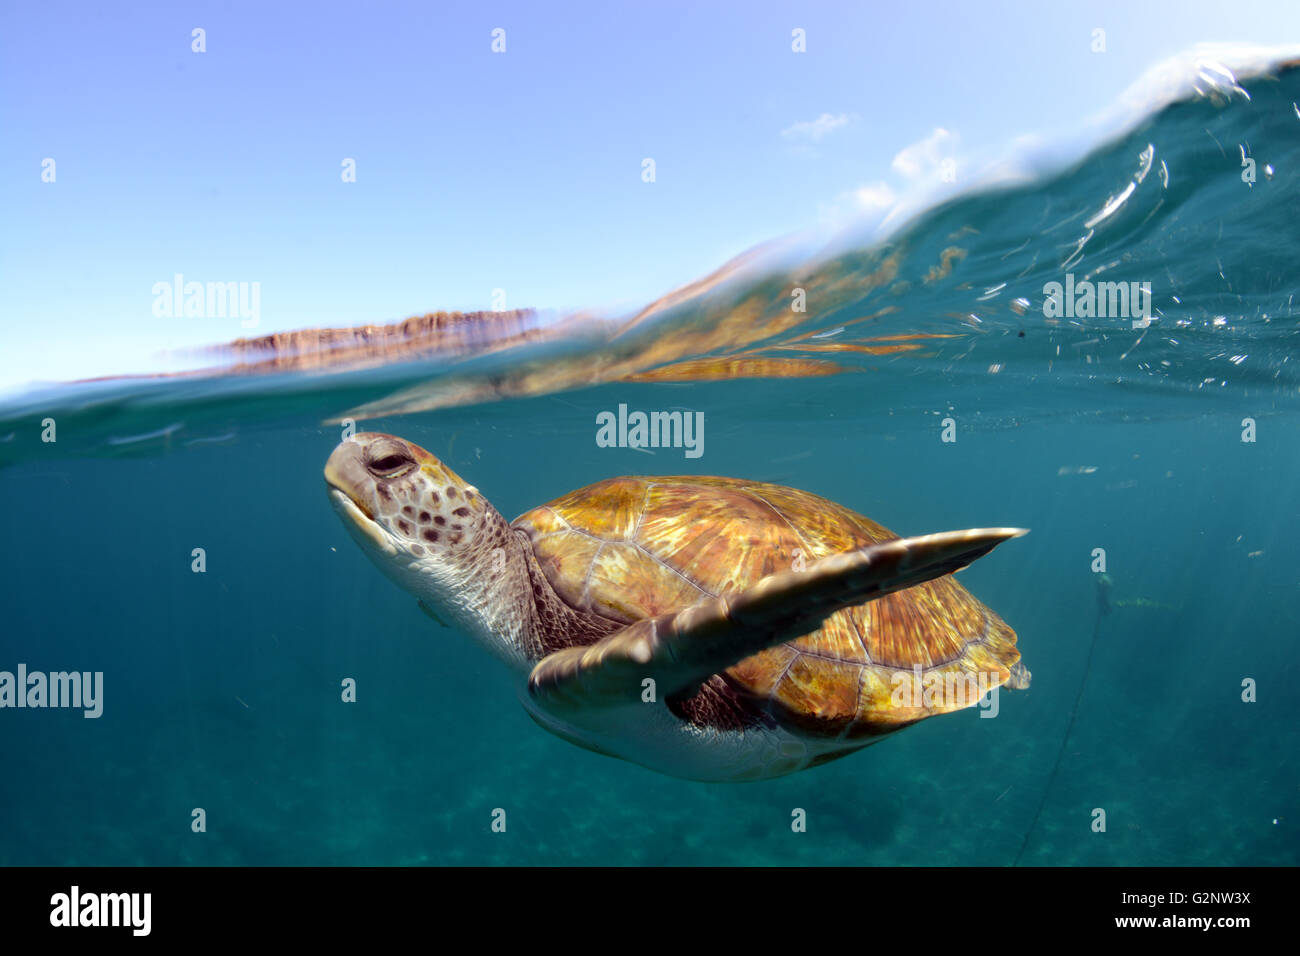 Green turtle underwater at El Puertito, Costa Adeje, Tenerife - Stock Image